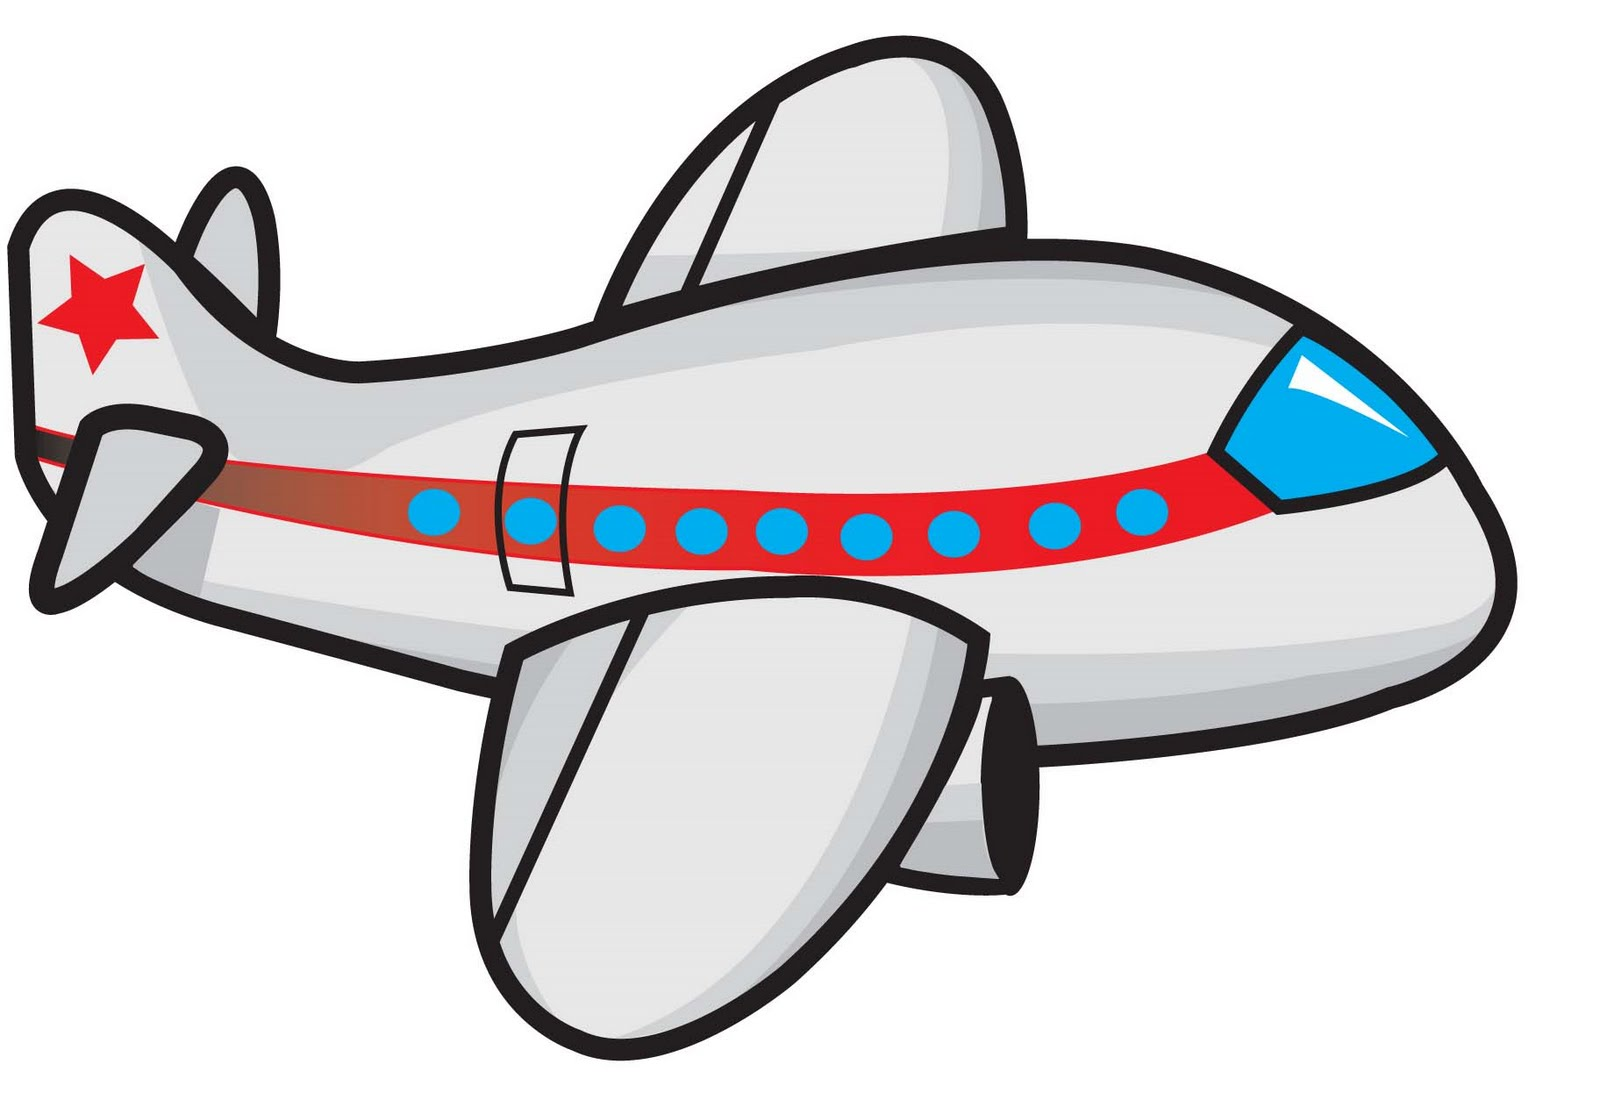 Carton Airplane - ClipArt Best